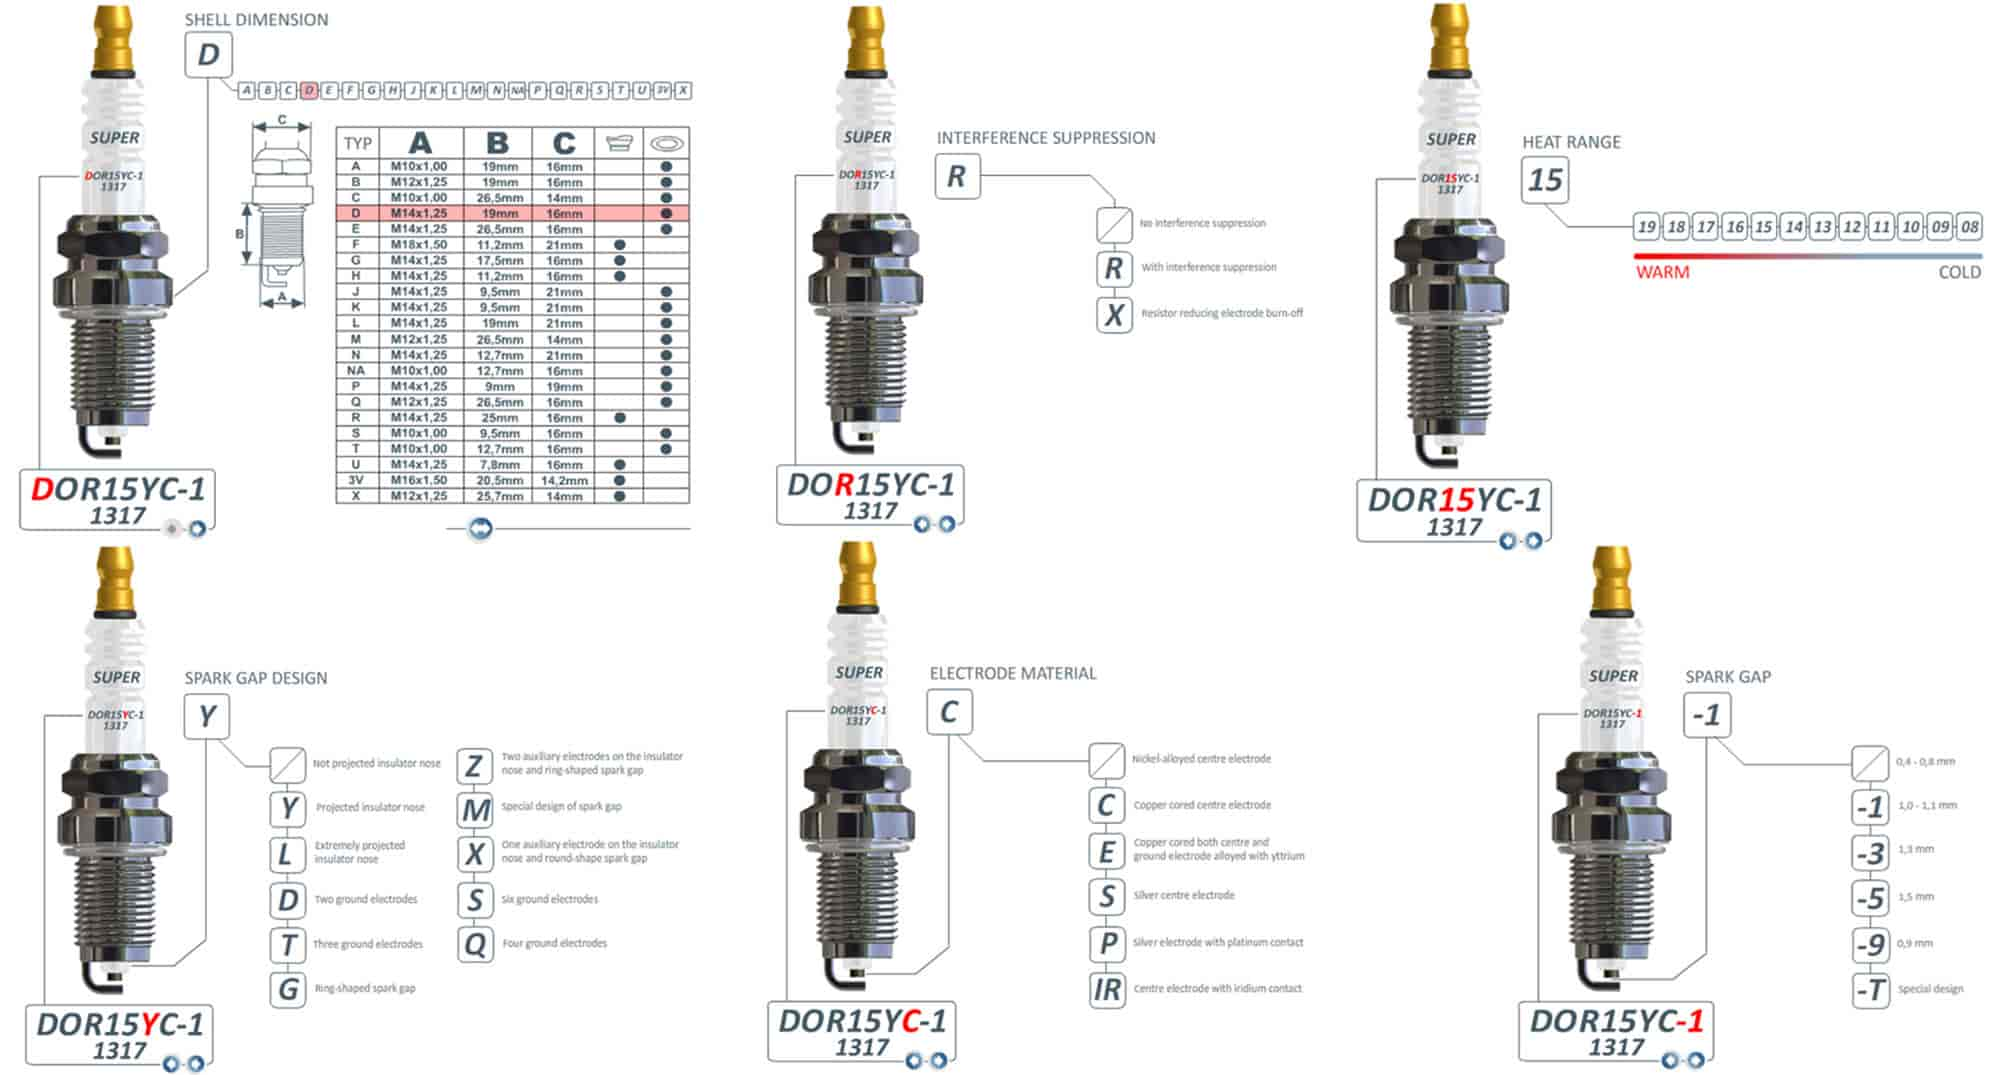 084 sparkchart brisk usa rr15bsxc premium evo spark plug 14mm thread jegs  at eliteediting.co